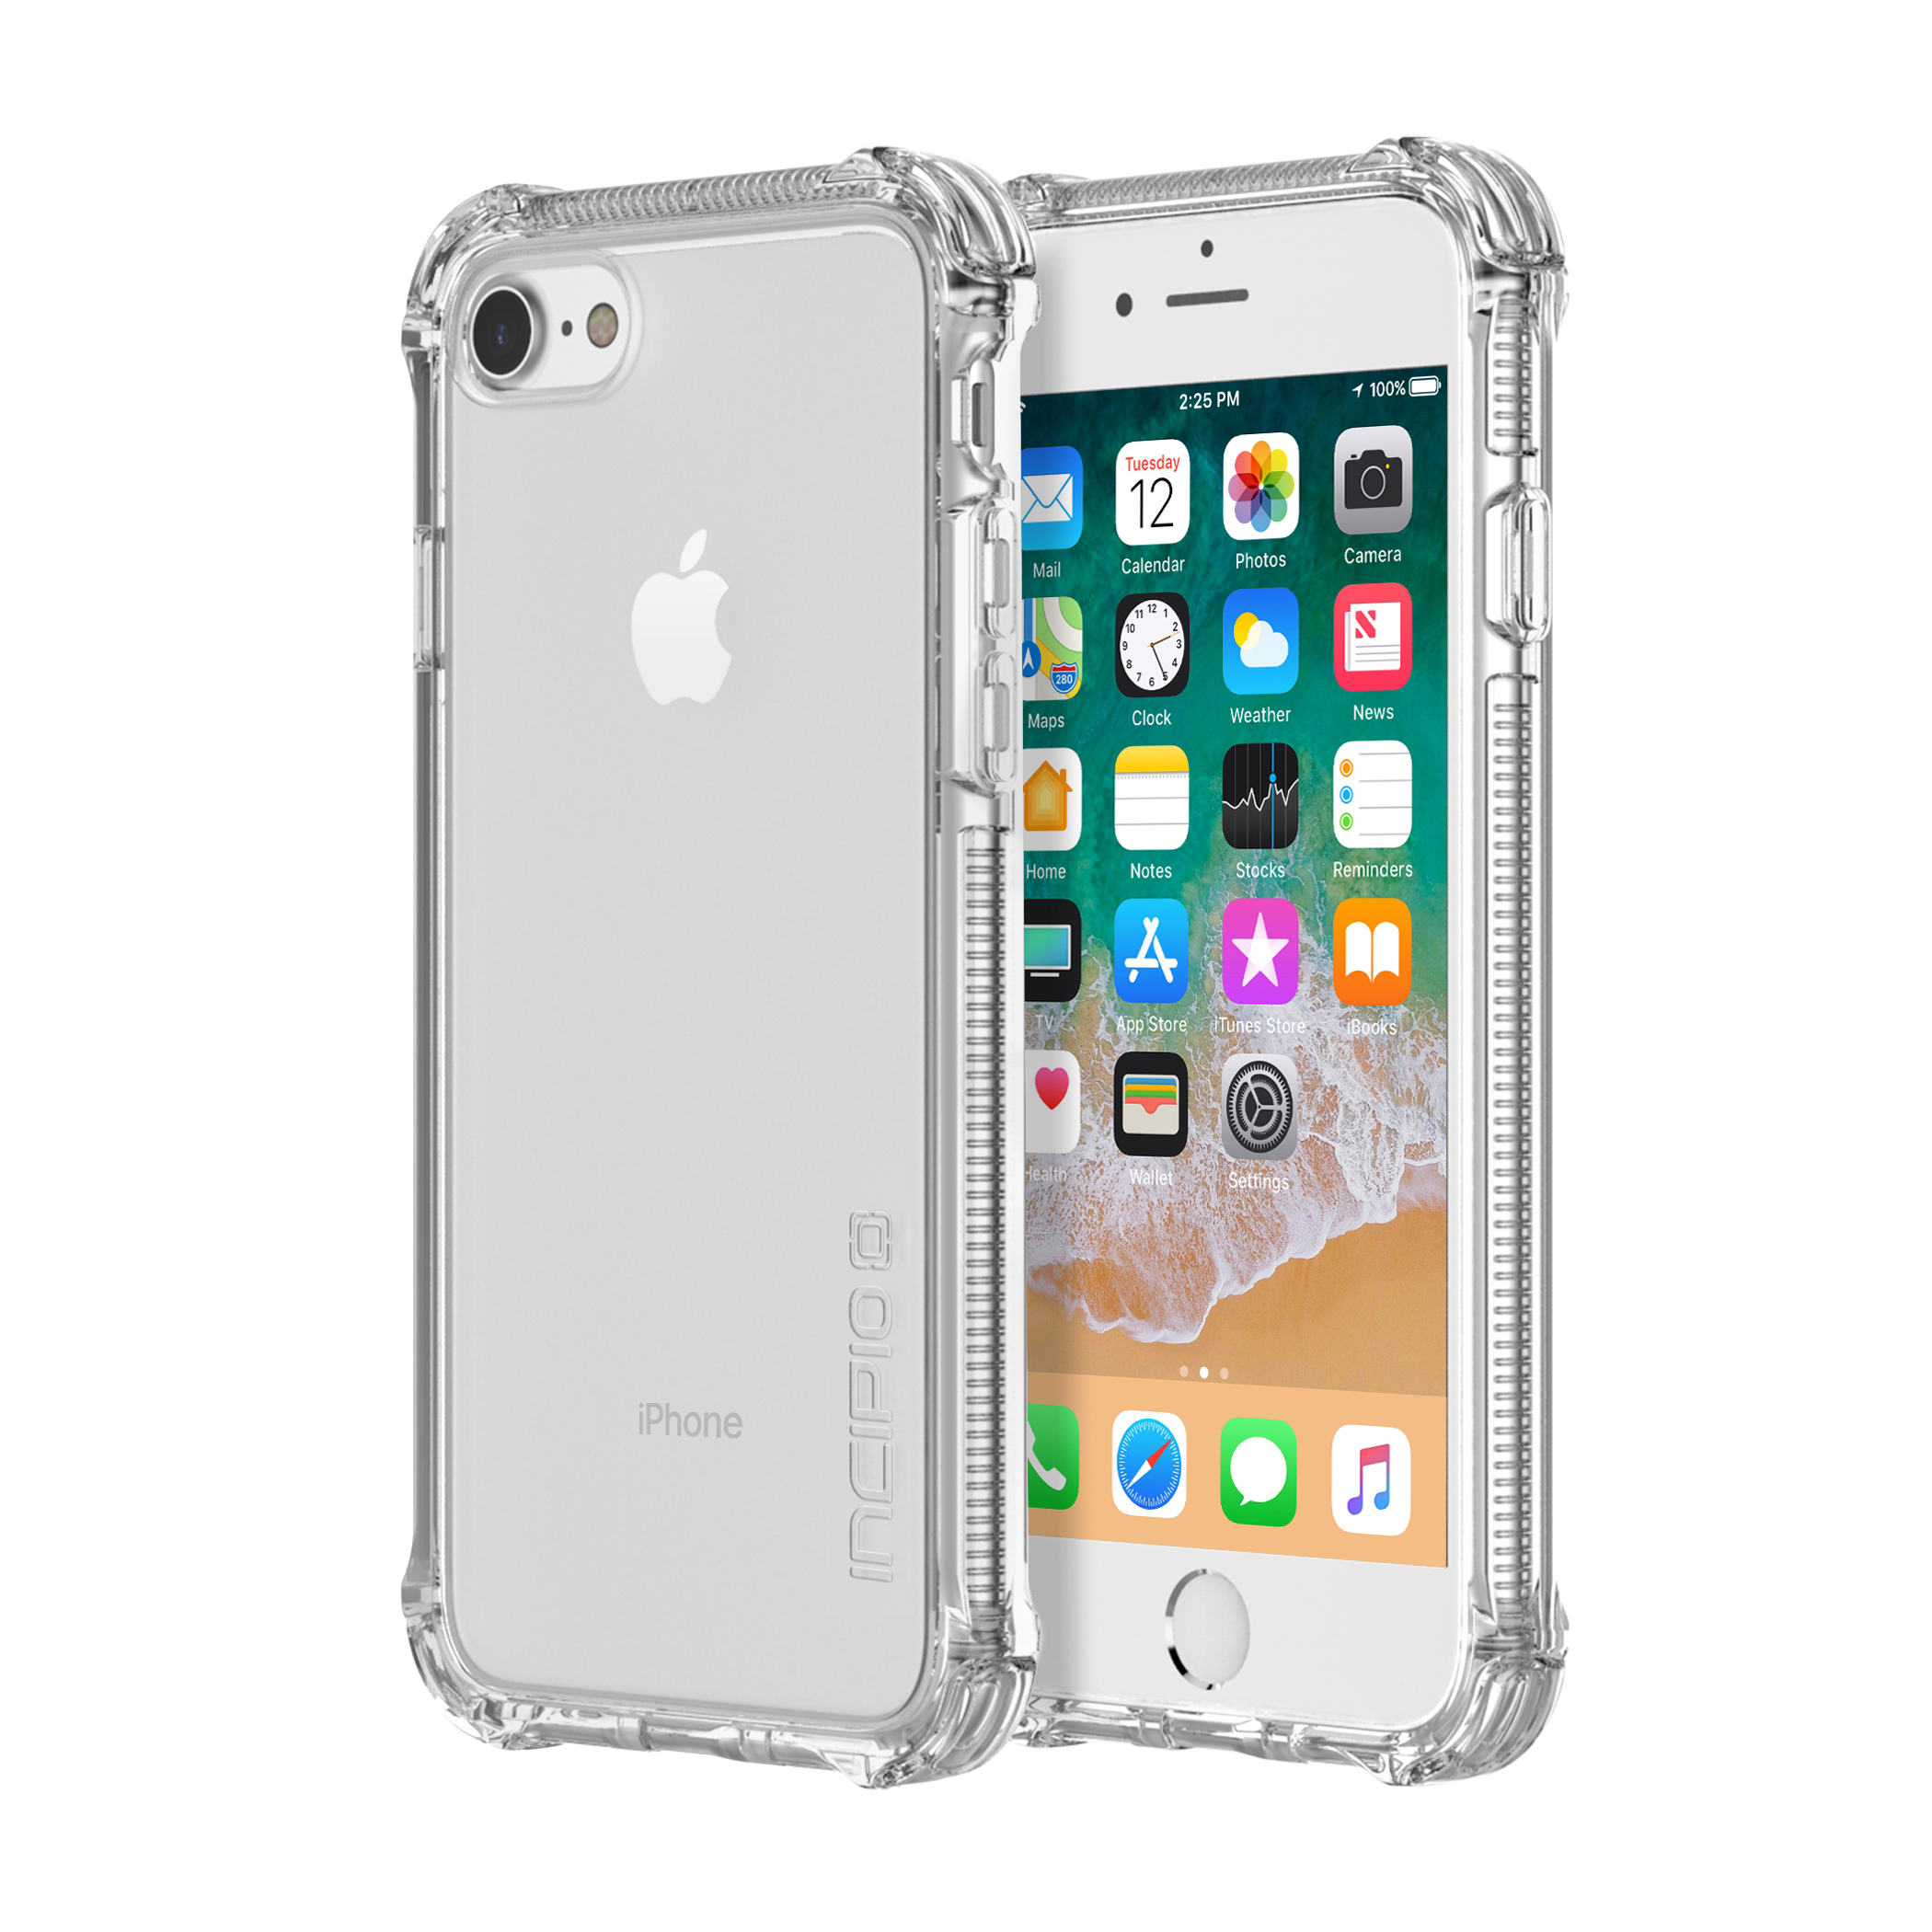 Incipio Reprieve Sport for iPhone 8 & iPhone 7 Clear Clear by Incipio Technologies